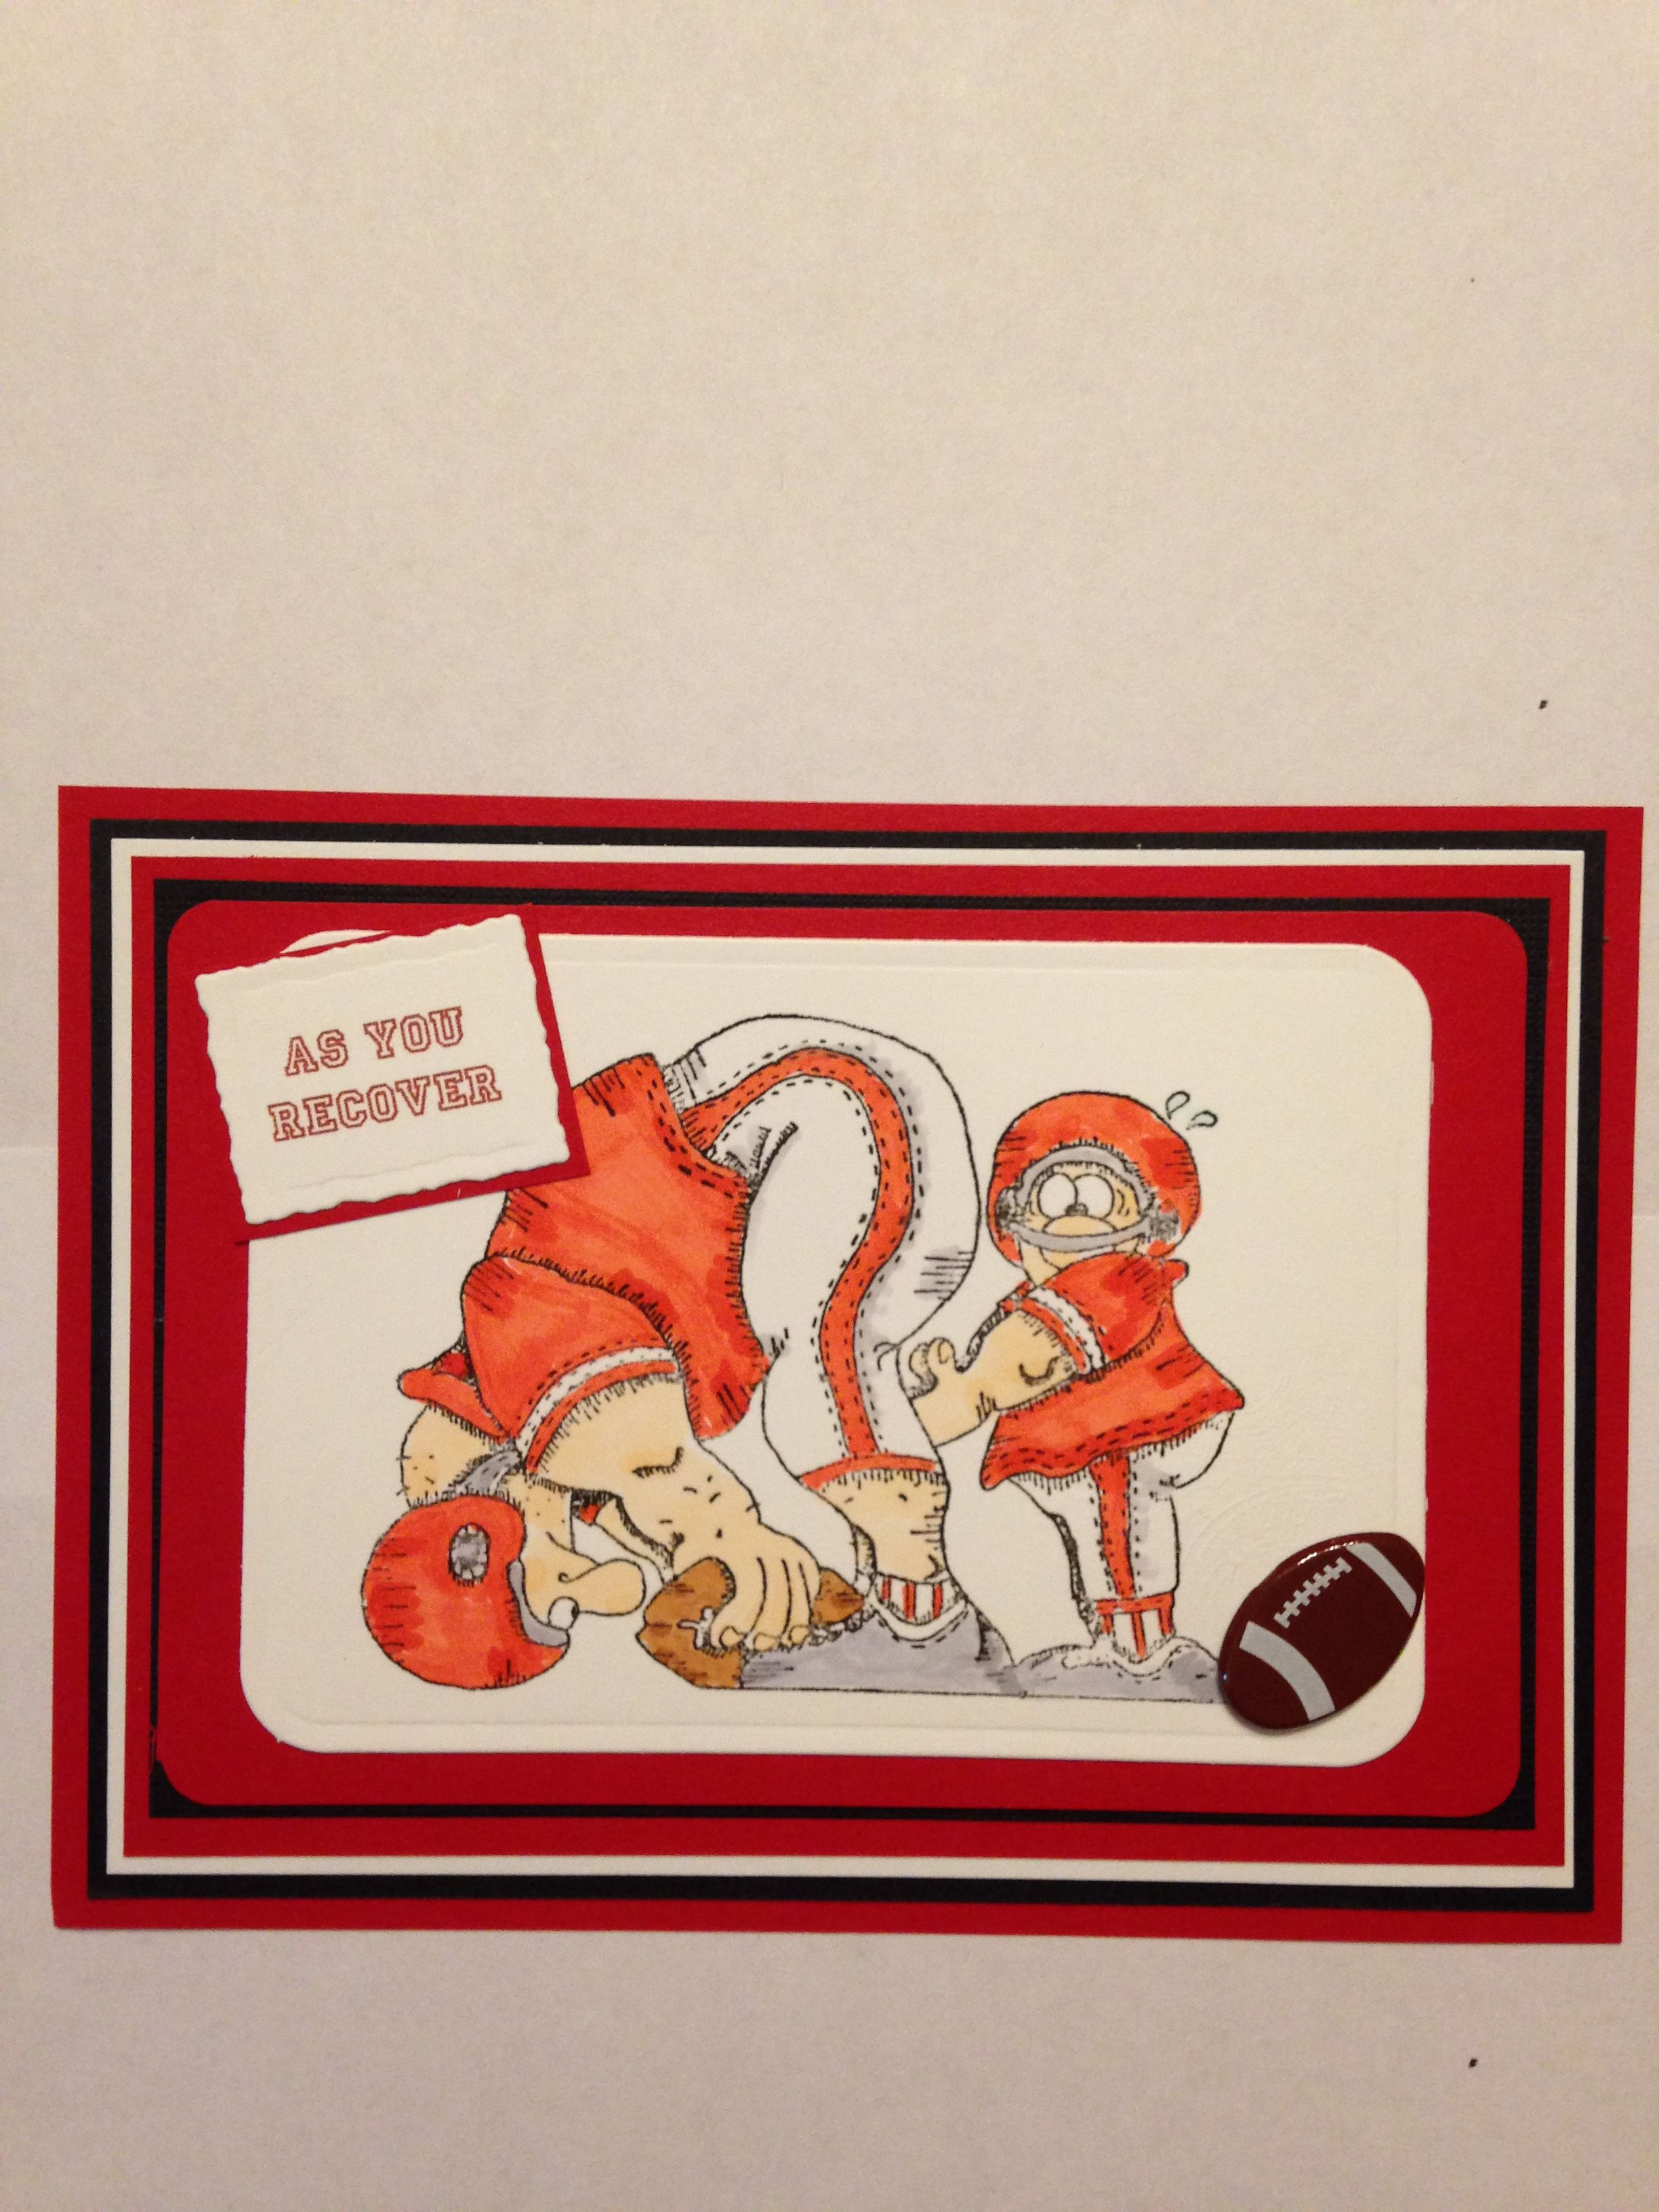 Get Well card for High School football player who was injured